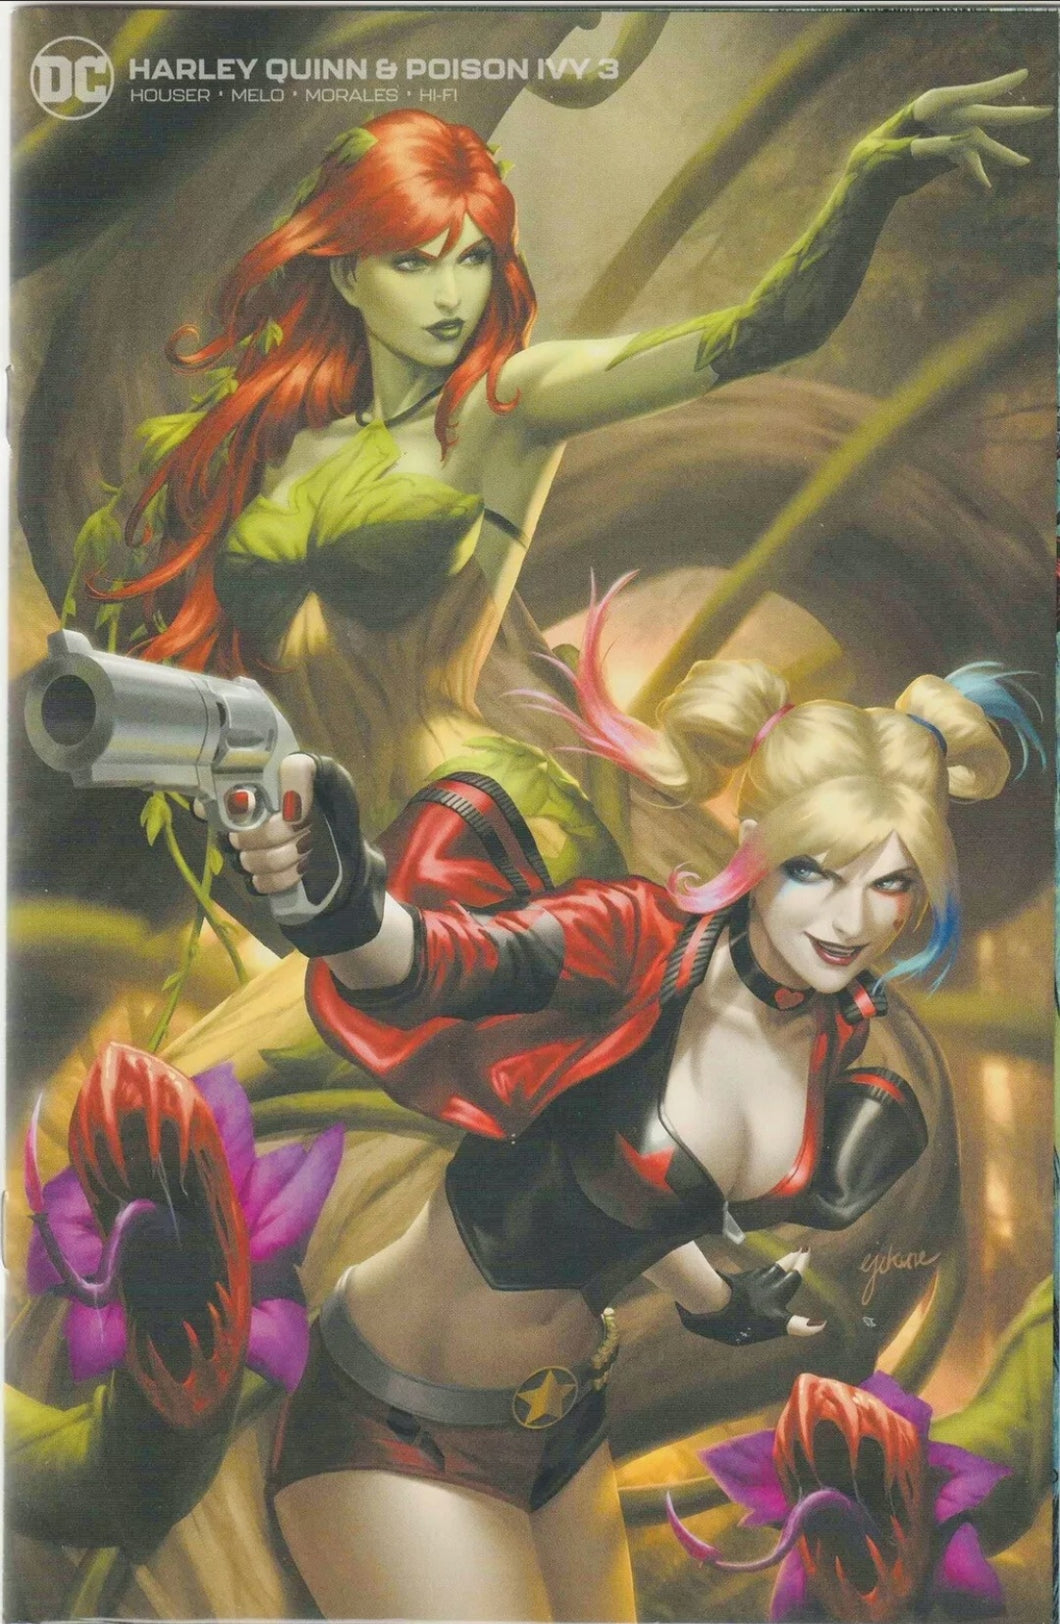 🔥🔥 Harley Quinn And Poison Ivy 3 Minimal Trade Dress Variant Limited to 750